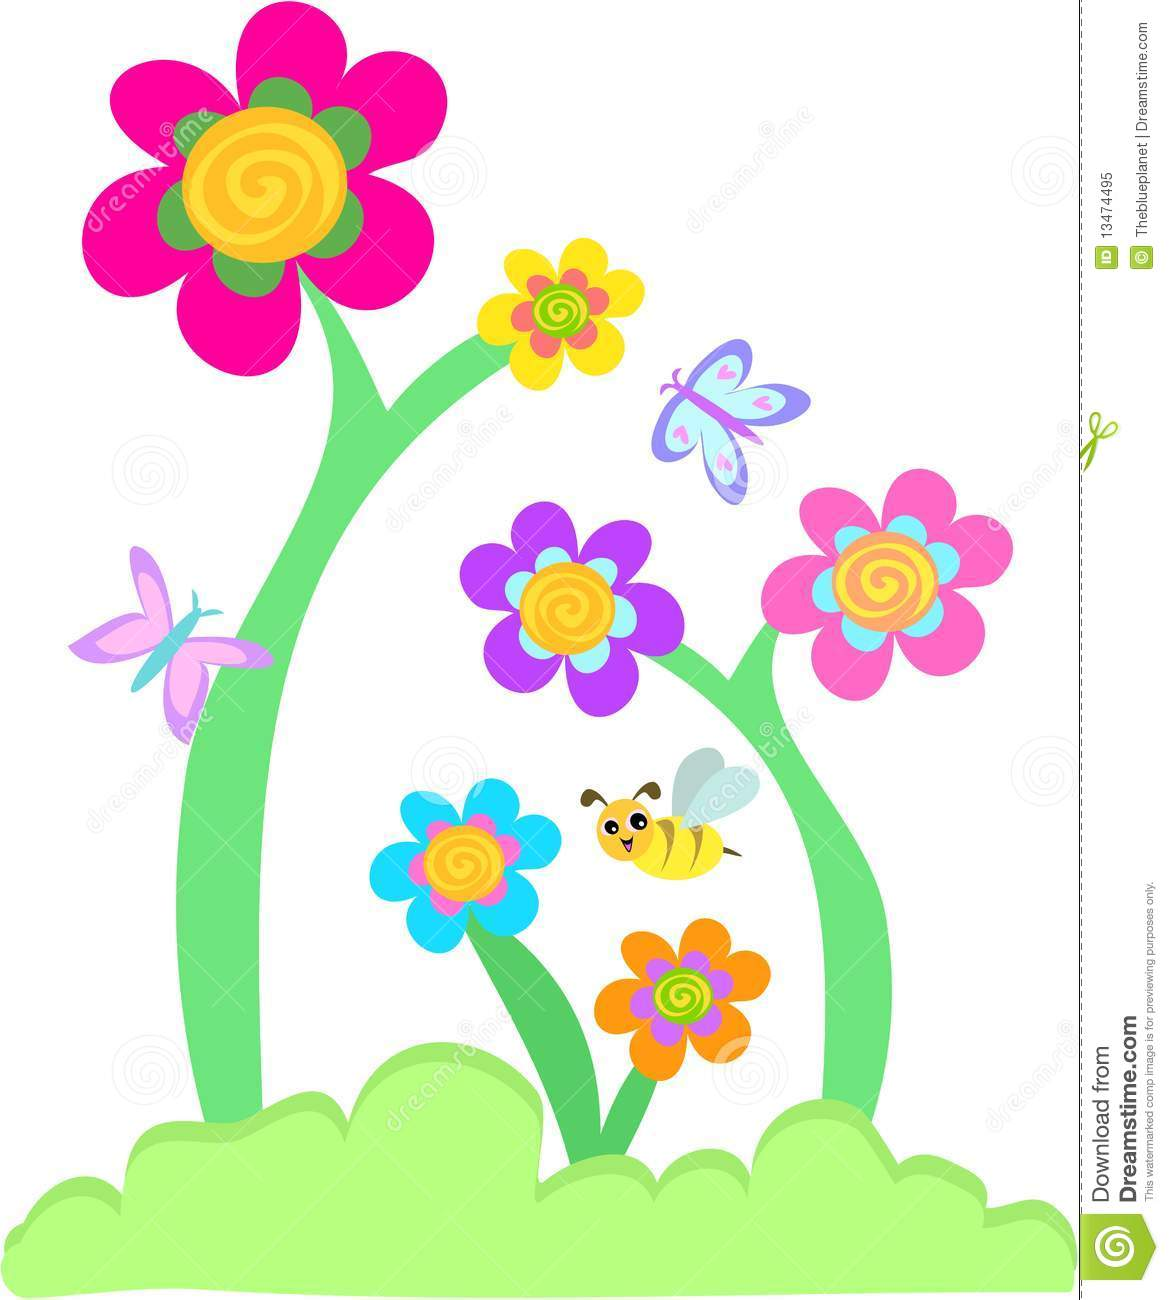 Whimsical Flower Garden with .